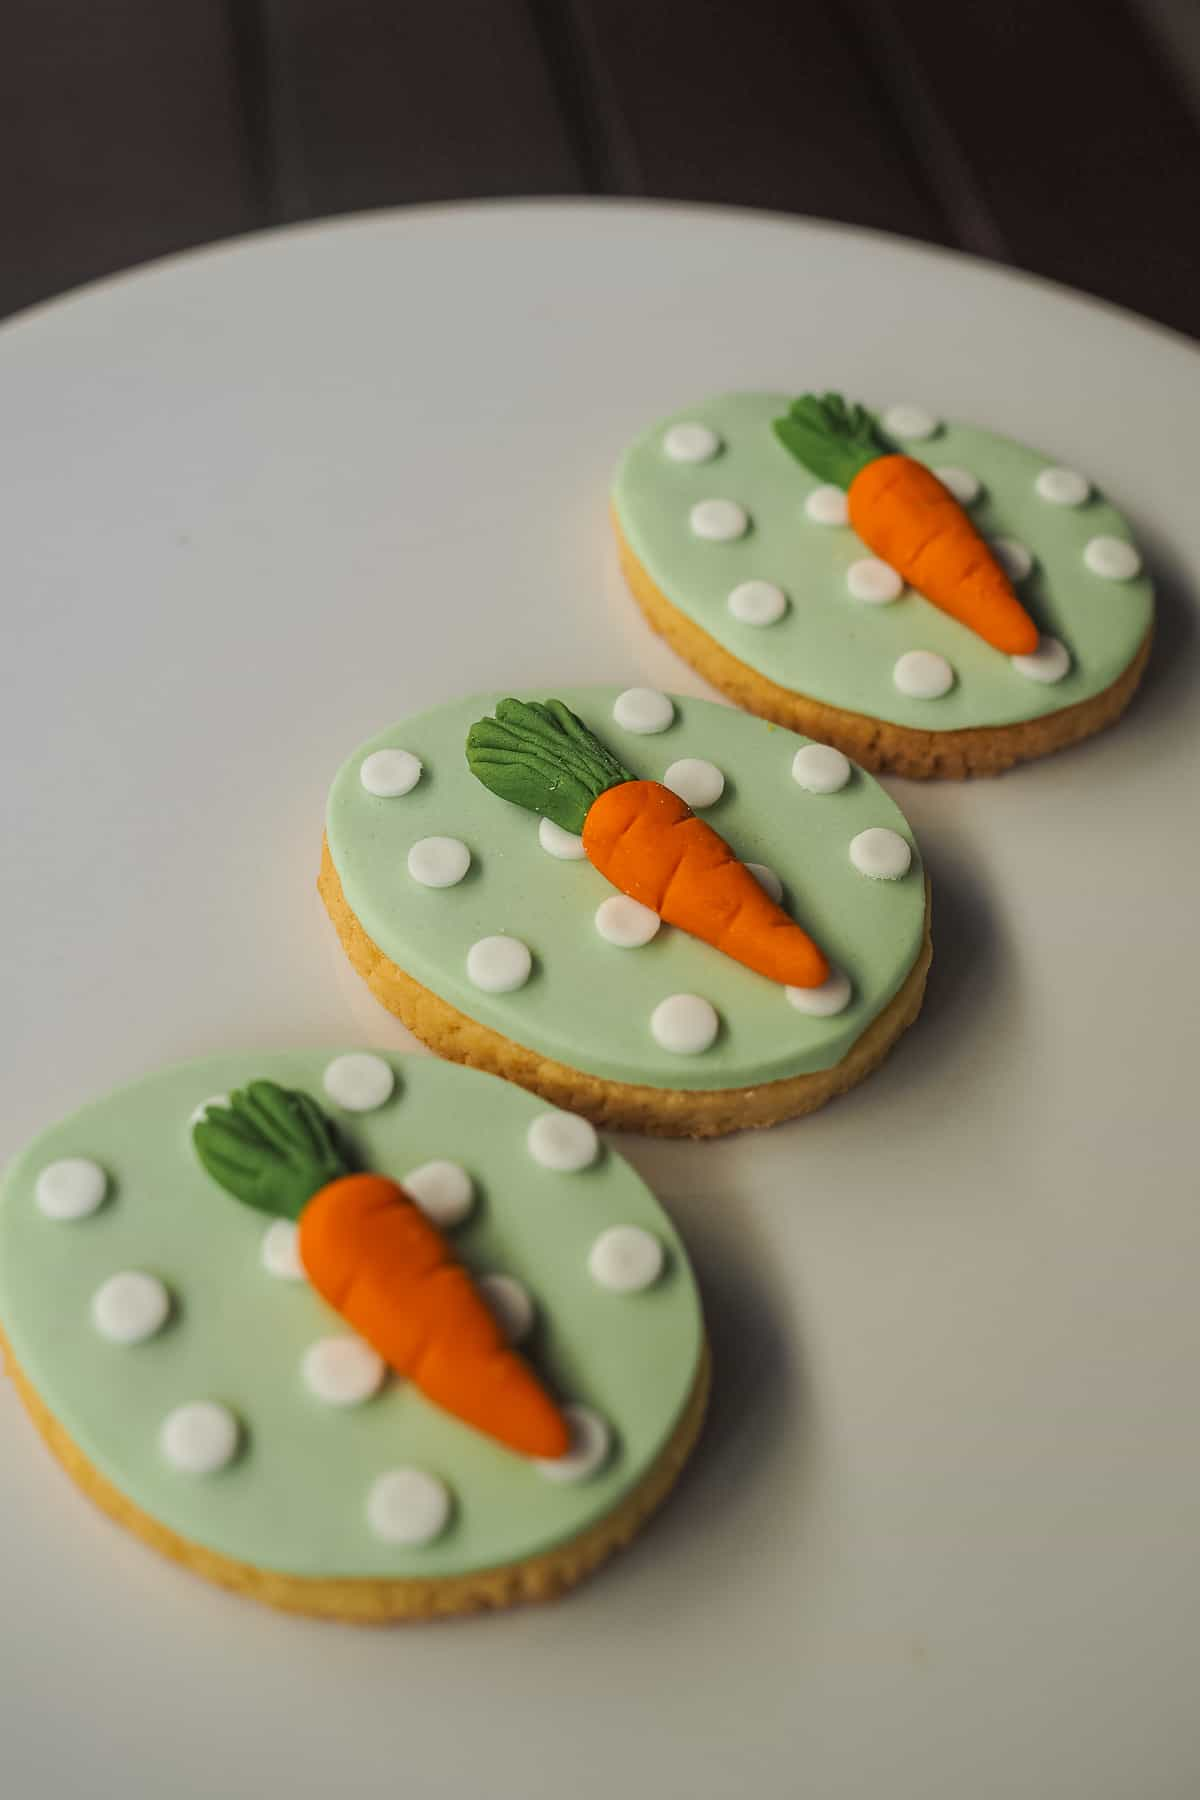 3 egg shaped Easter cookies with light green background and white polka dots. Each cookie is decorated with an orange fondant carrot